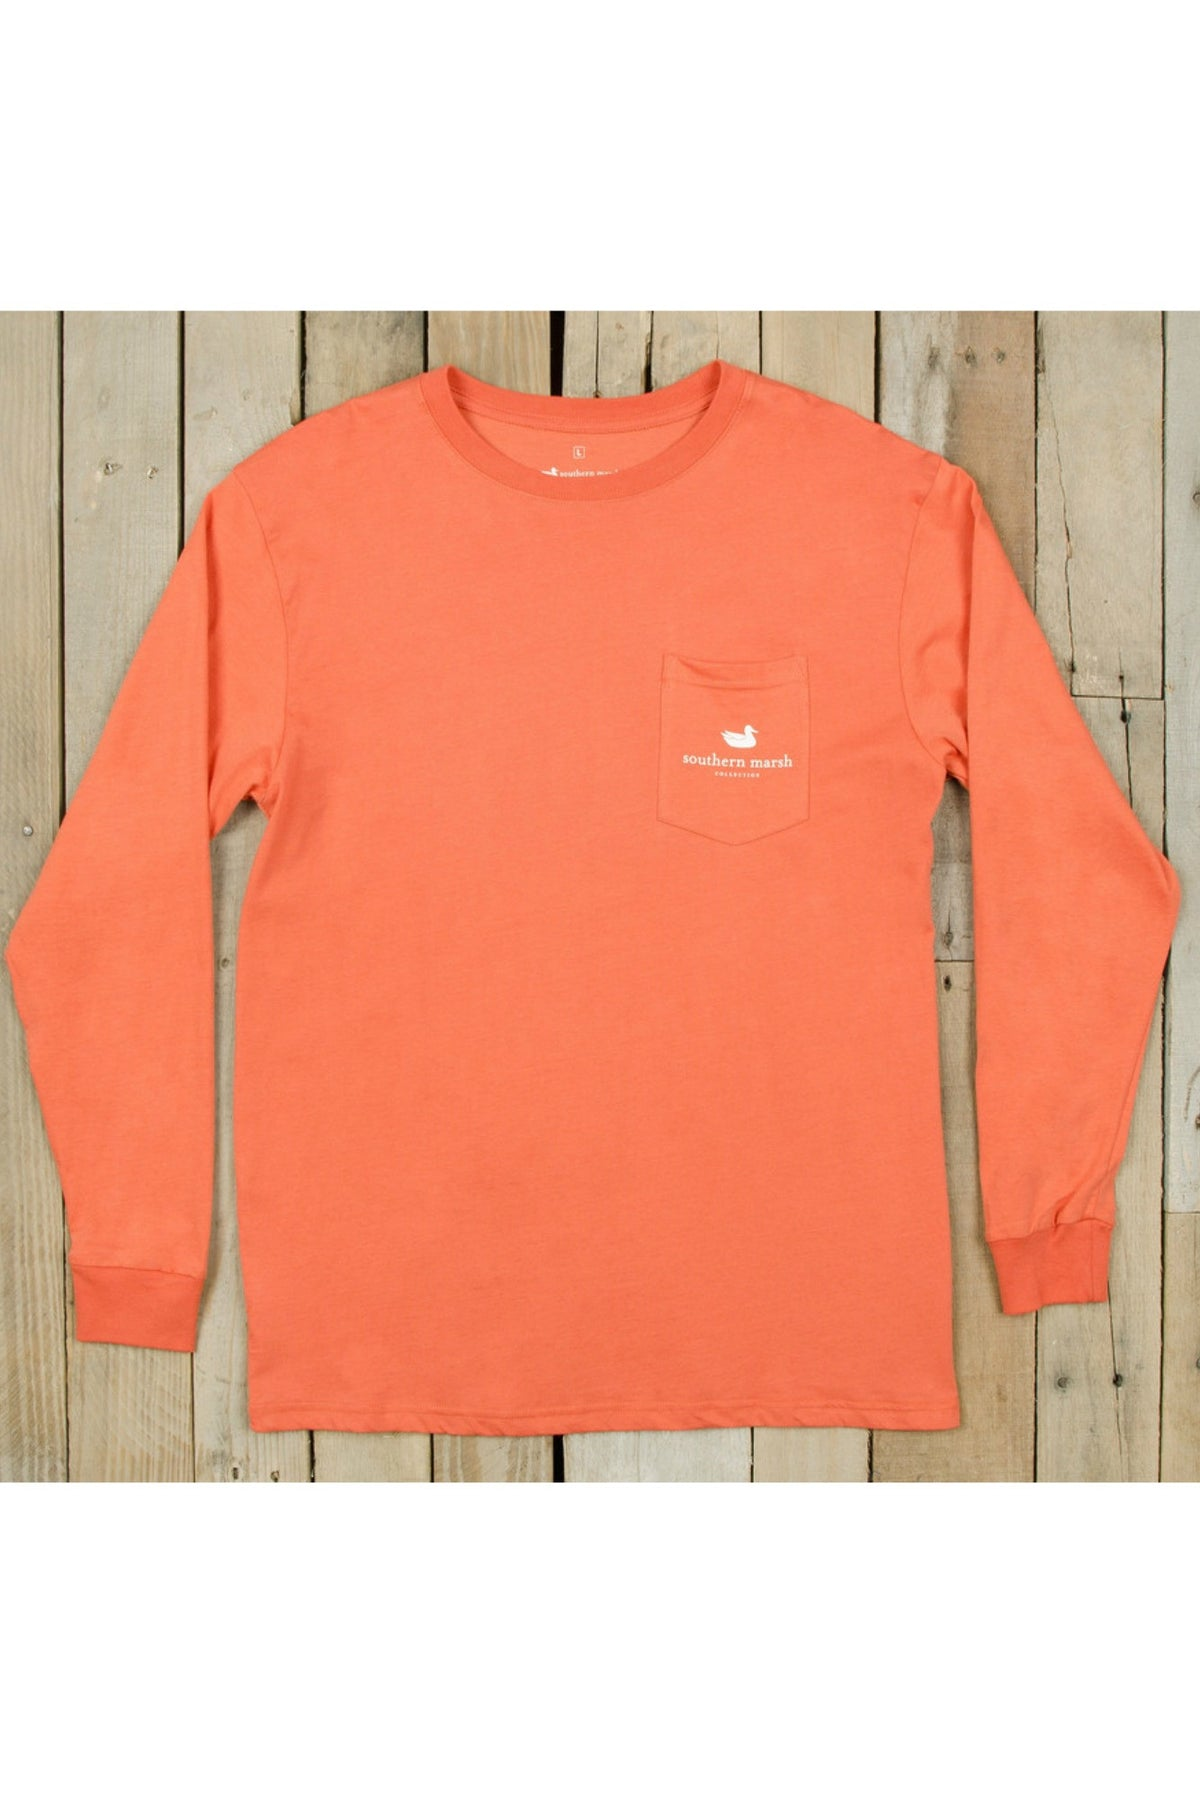 Southern Marsh: Field Hunt Long Sleeve Tee, Burnt Sienna